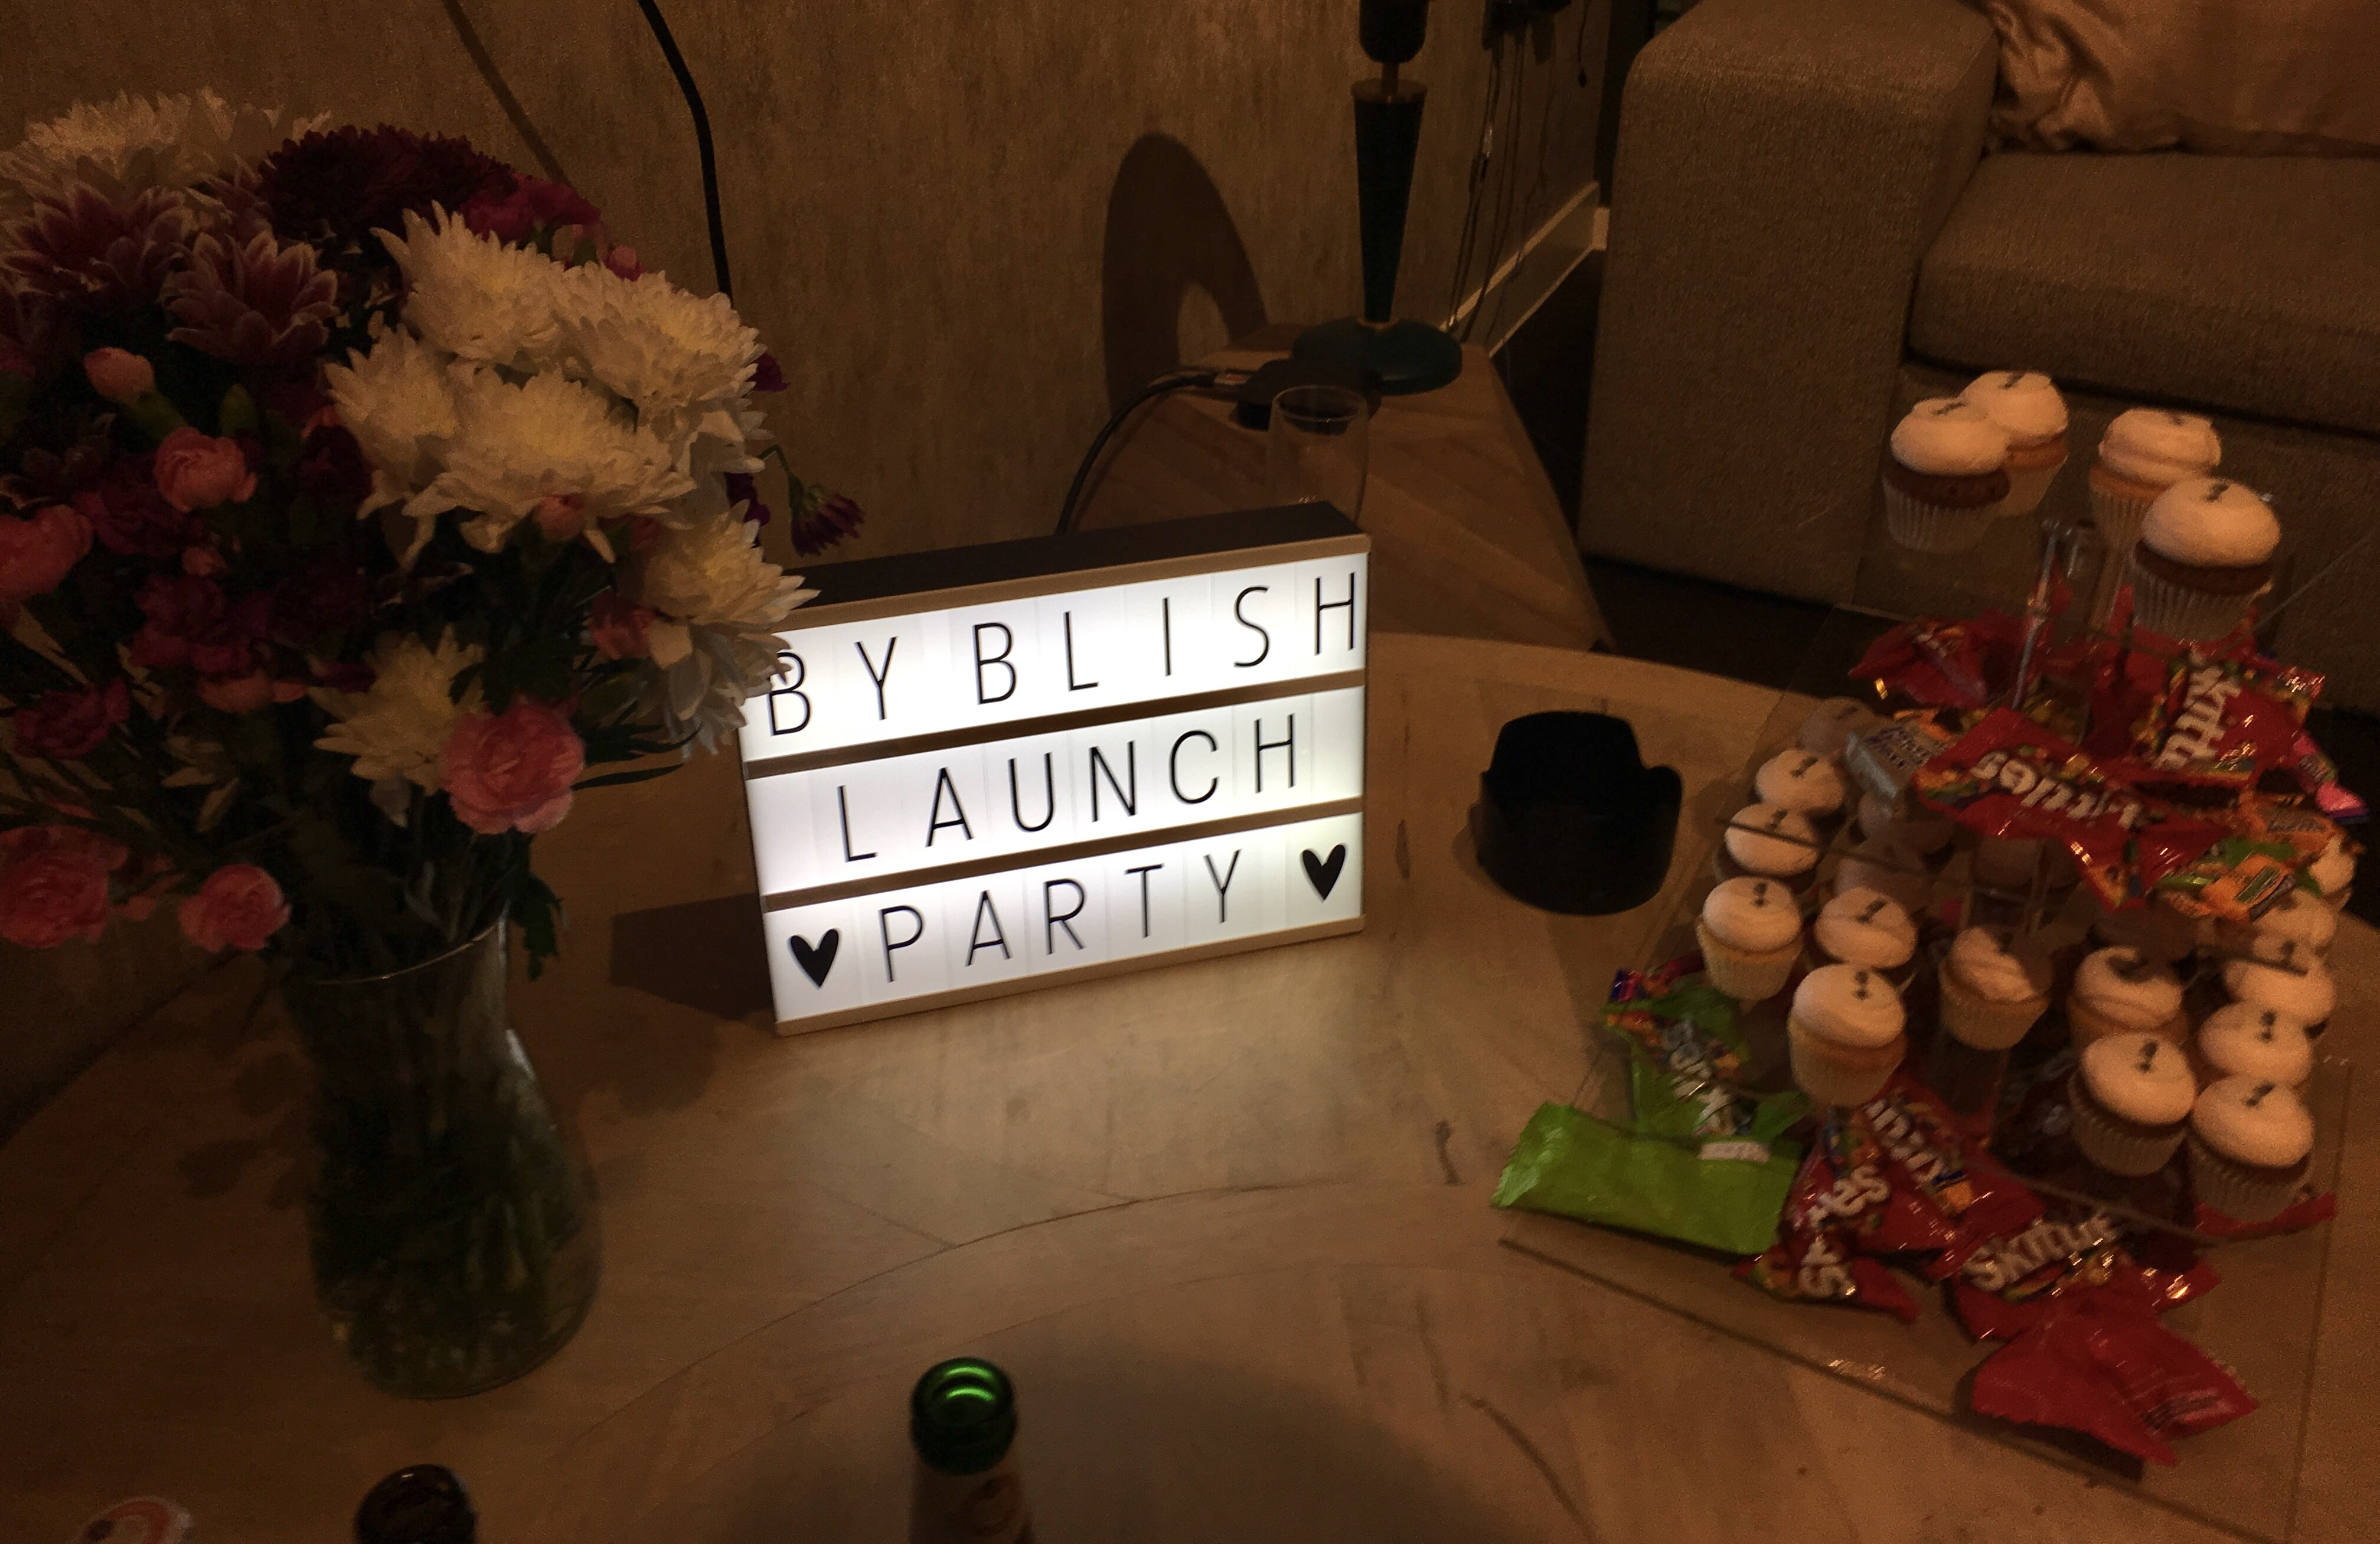 By Blish Launch Party